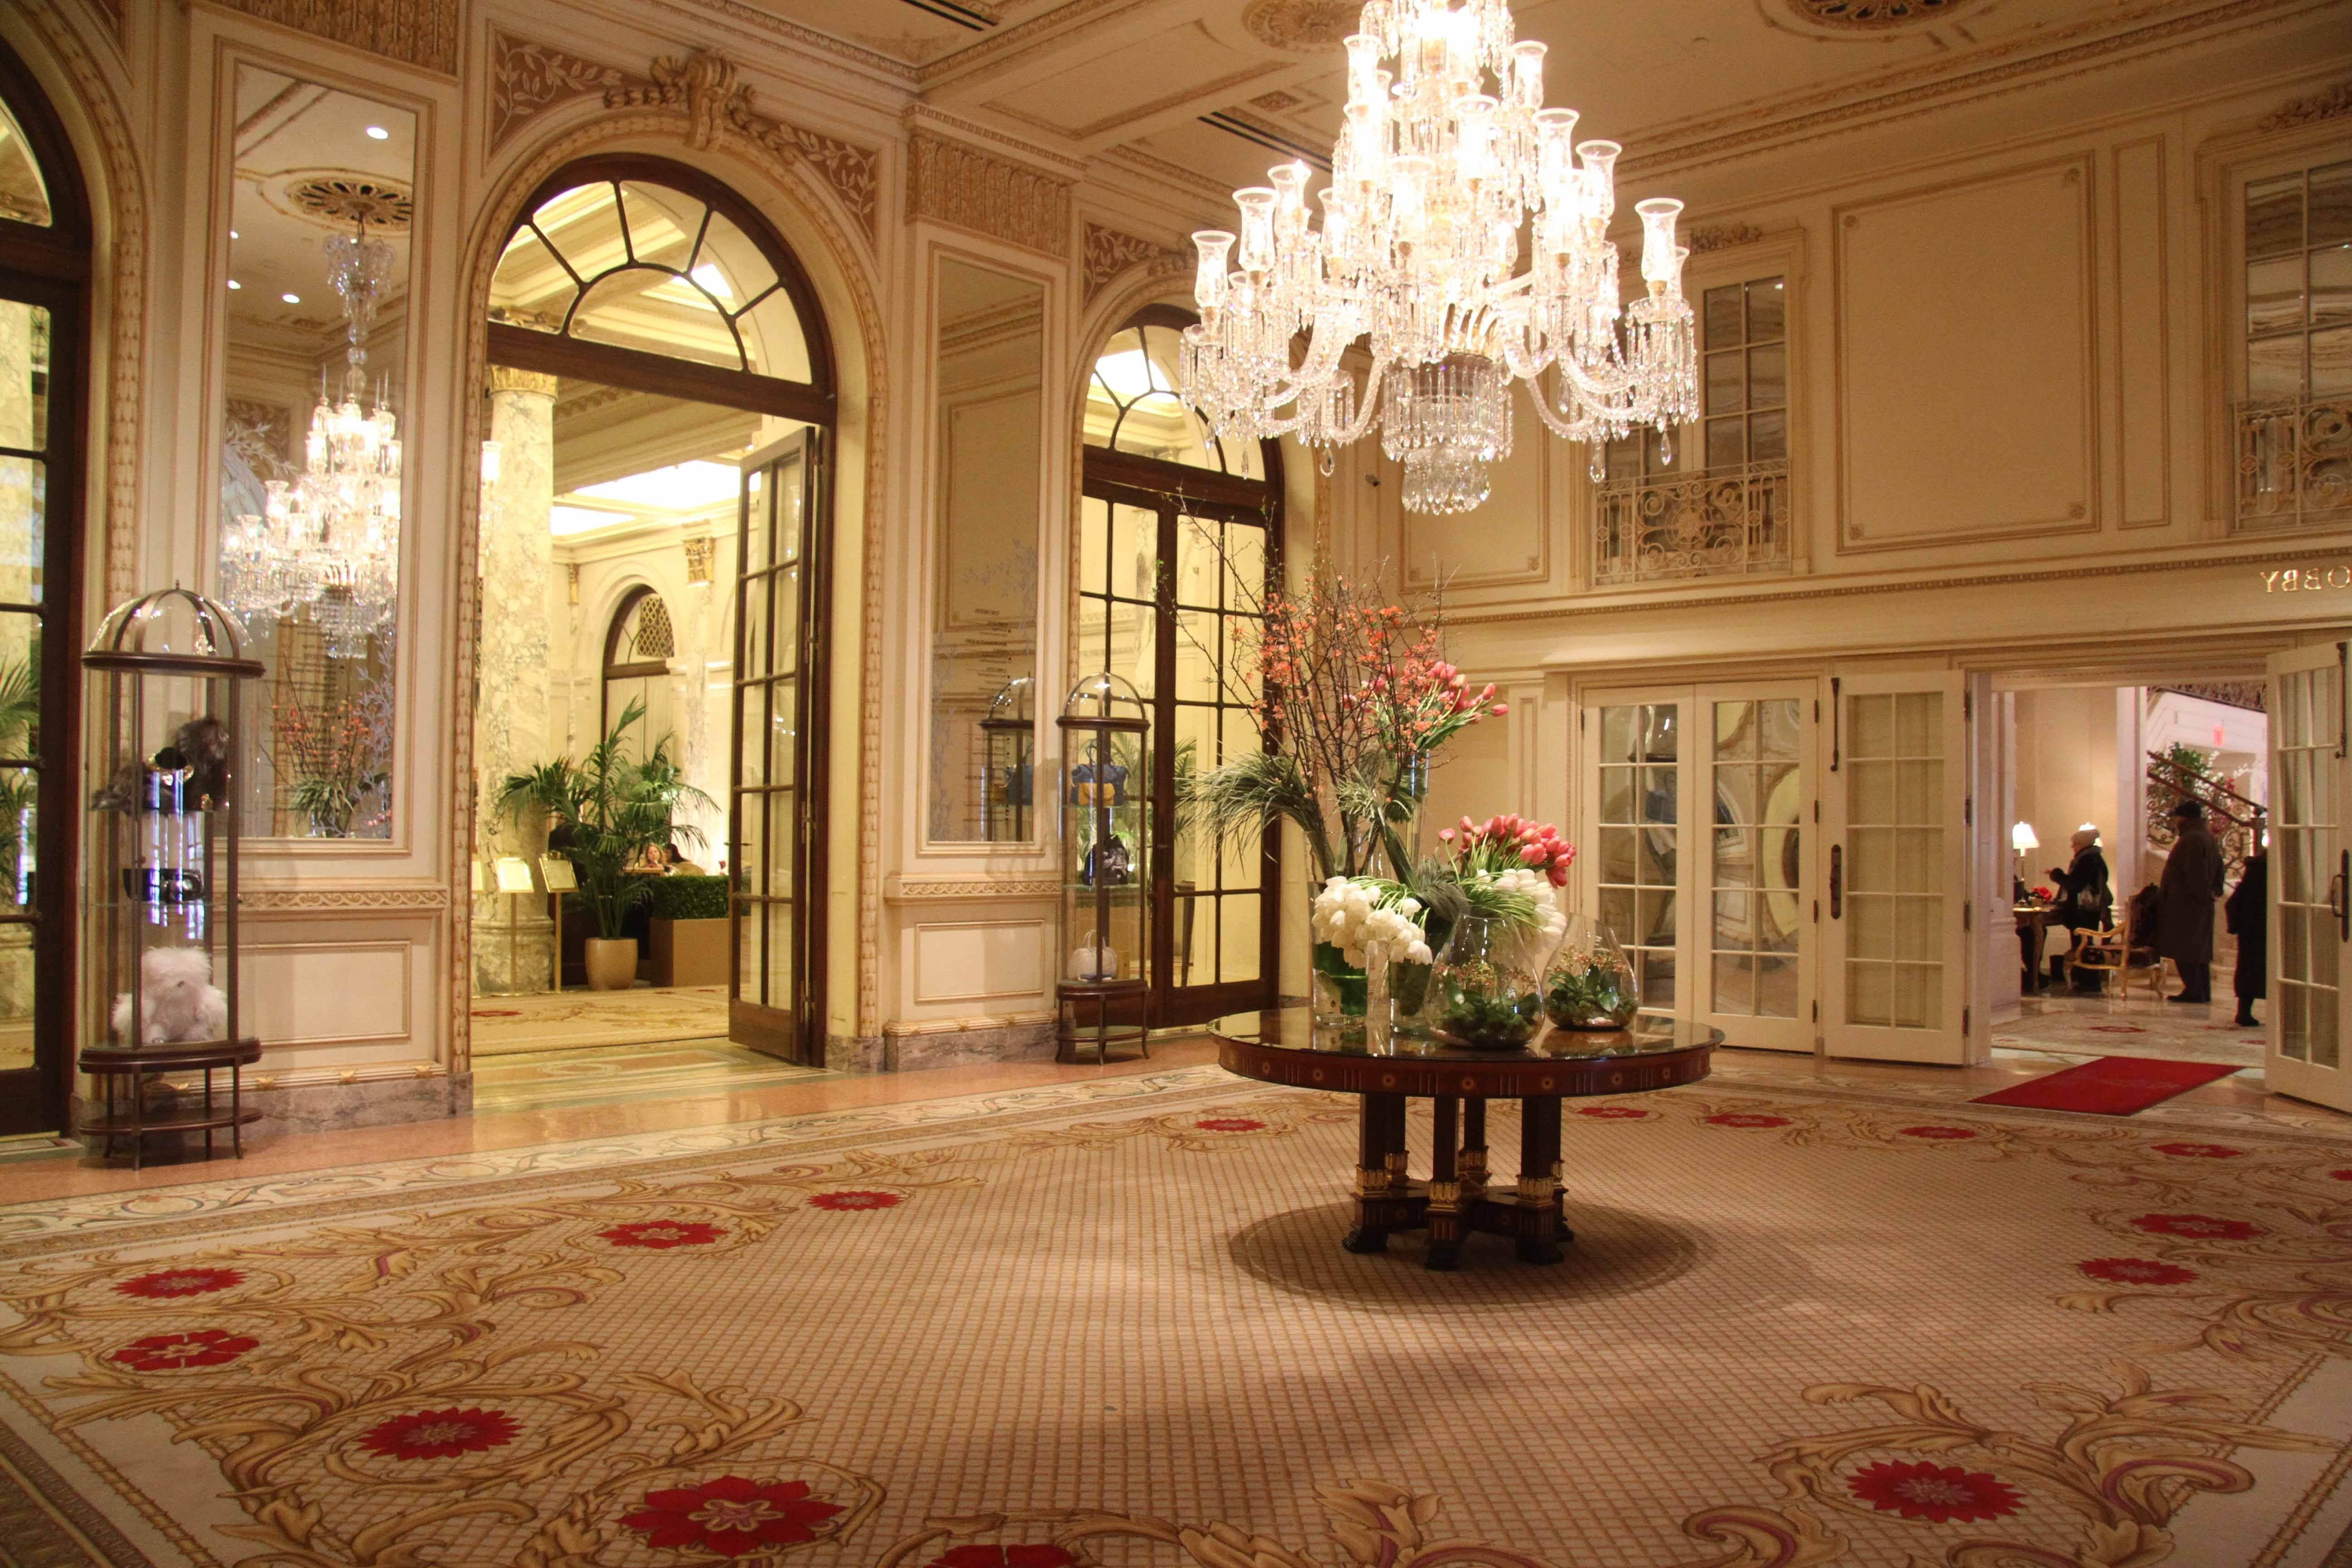 The Plaza' Hotel: The Century's (View 8 of 20)